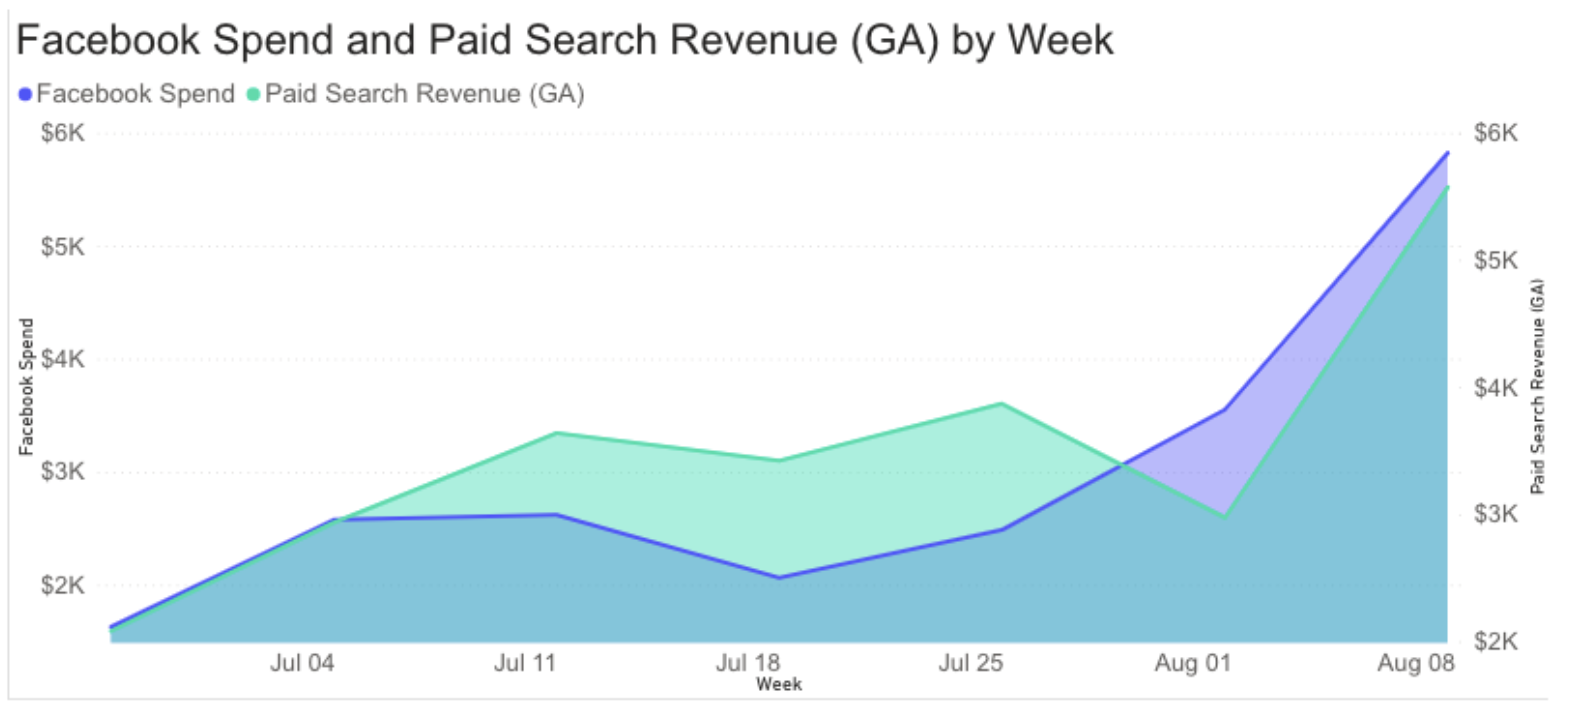 Facebook spend and paid search revenue